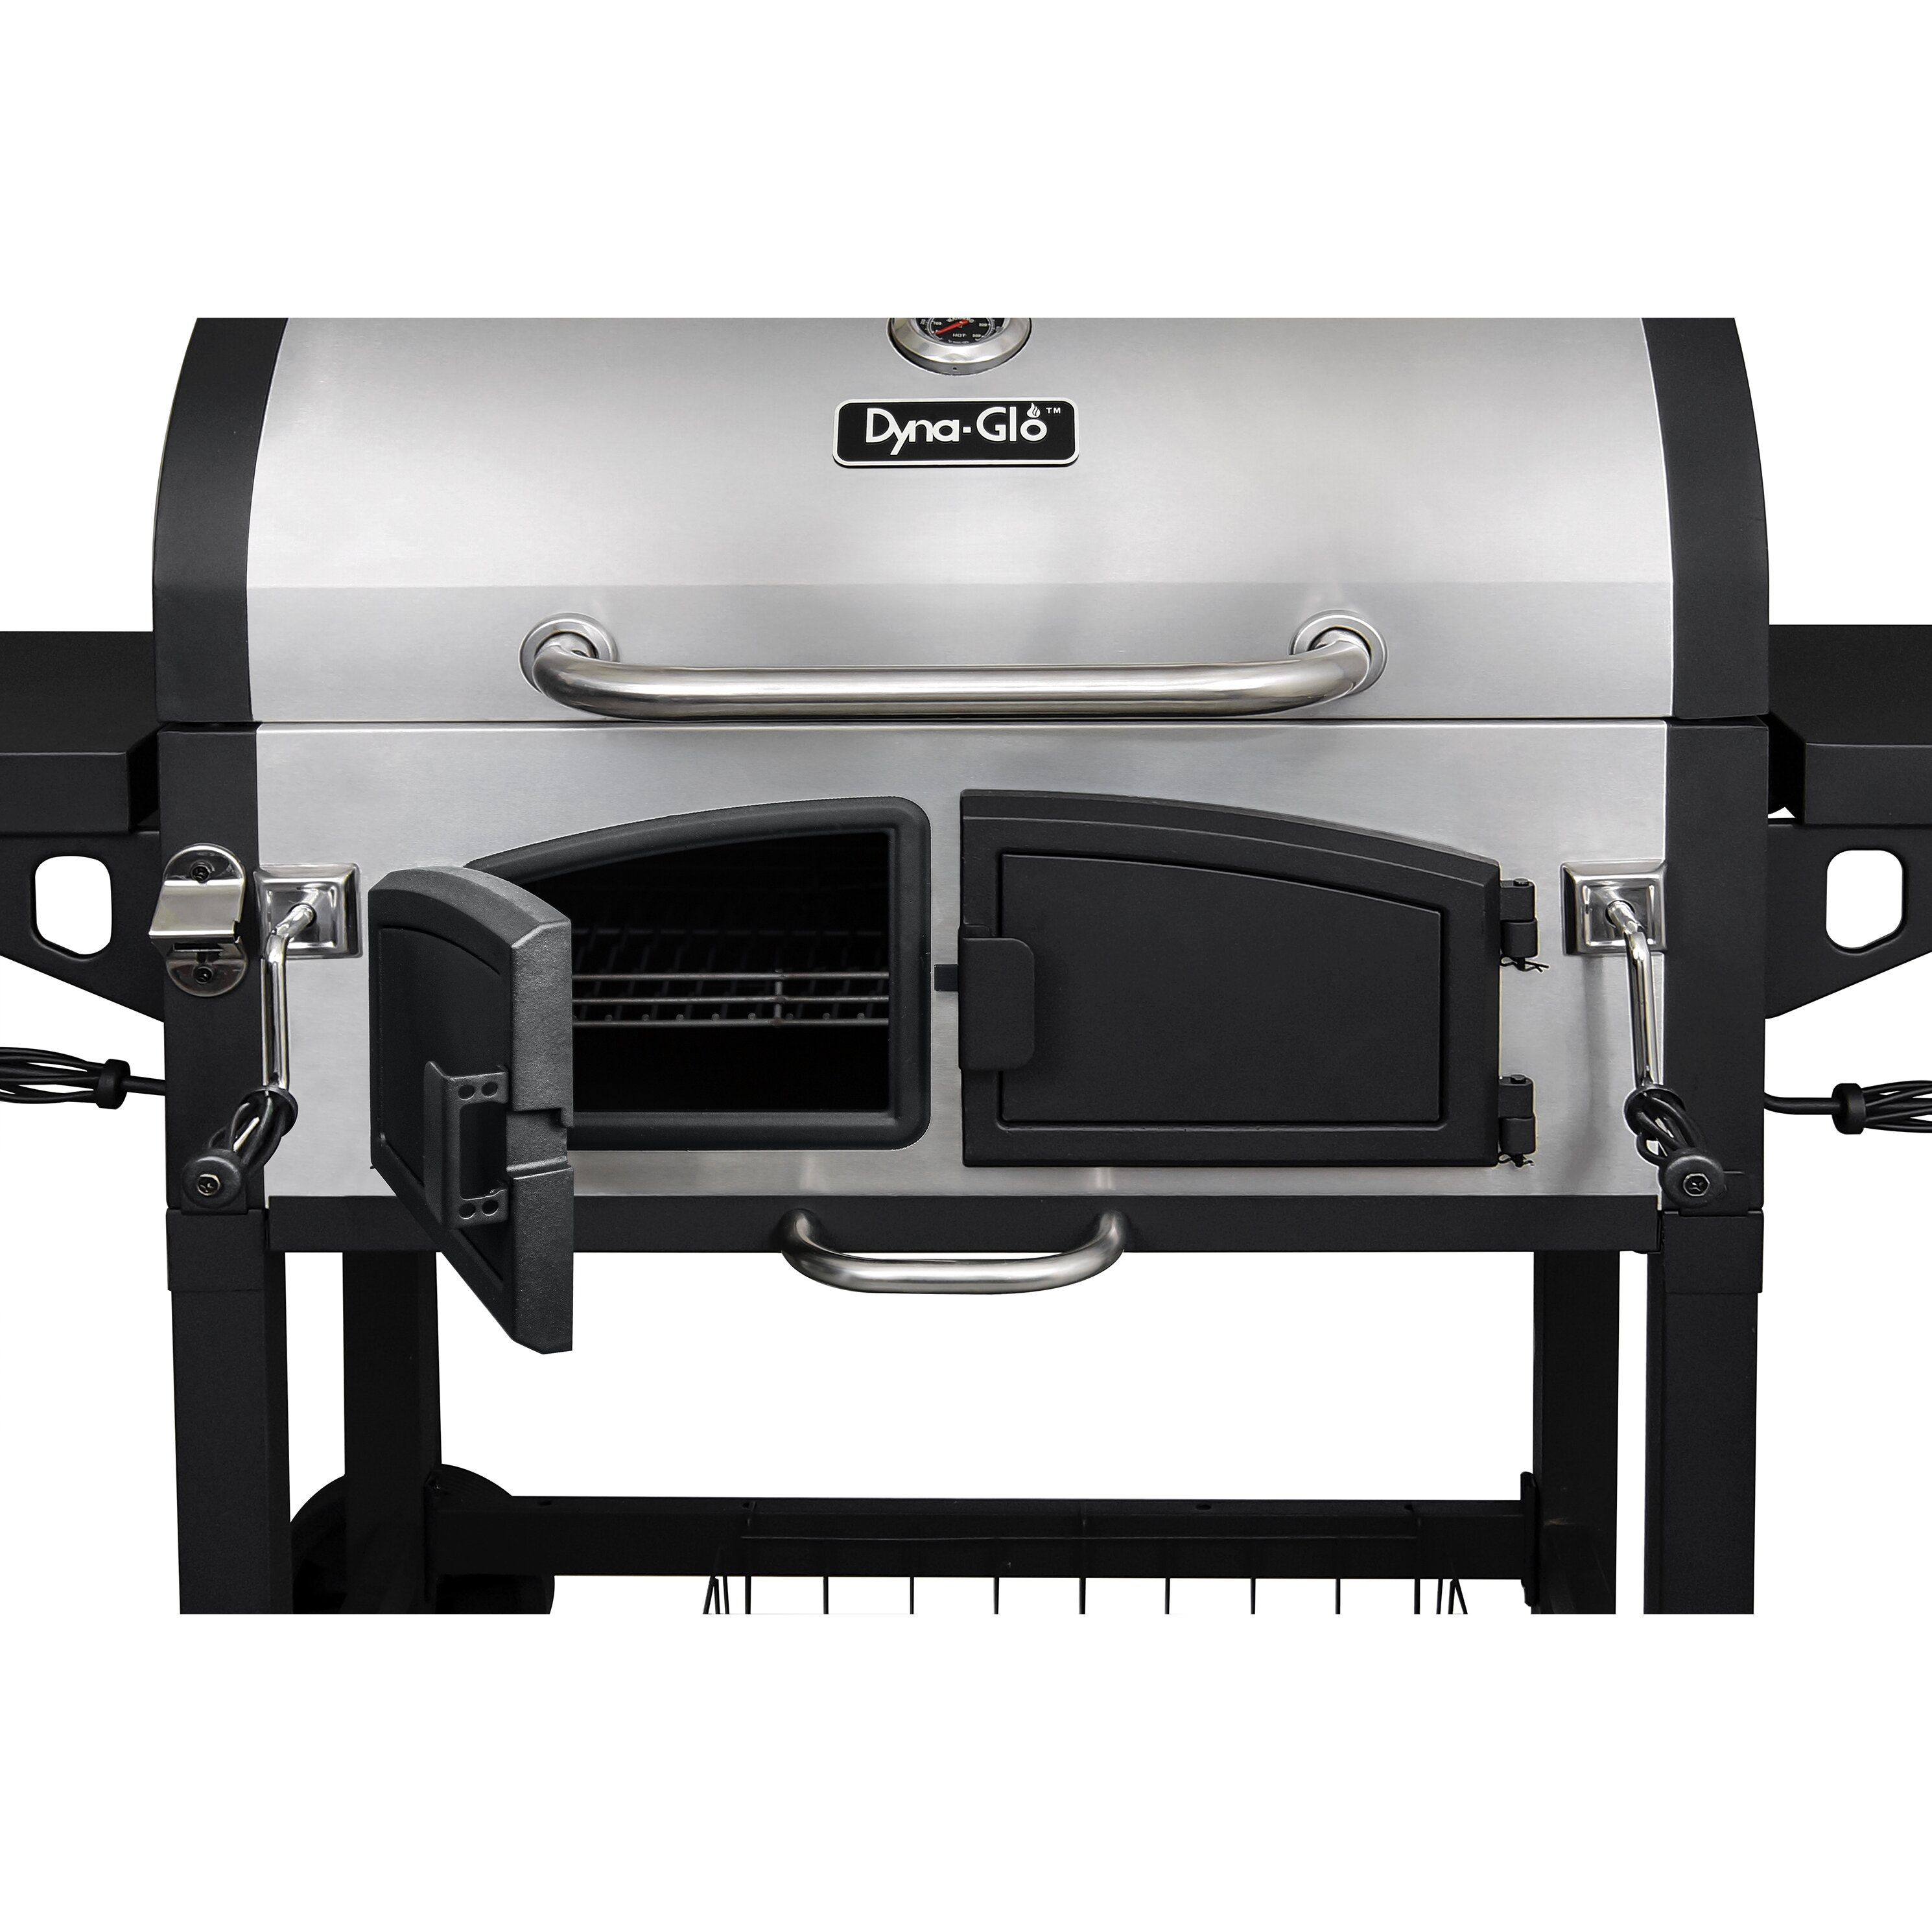 Dyna glo dual chamber charcoal grill with adjustable charcoal trays